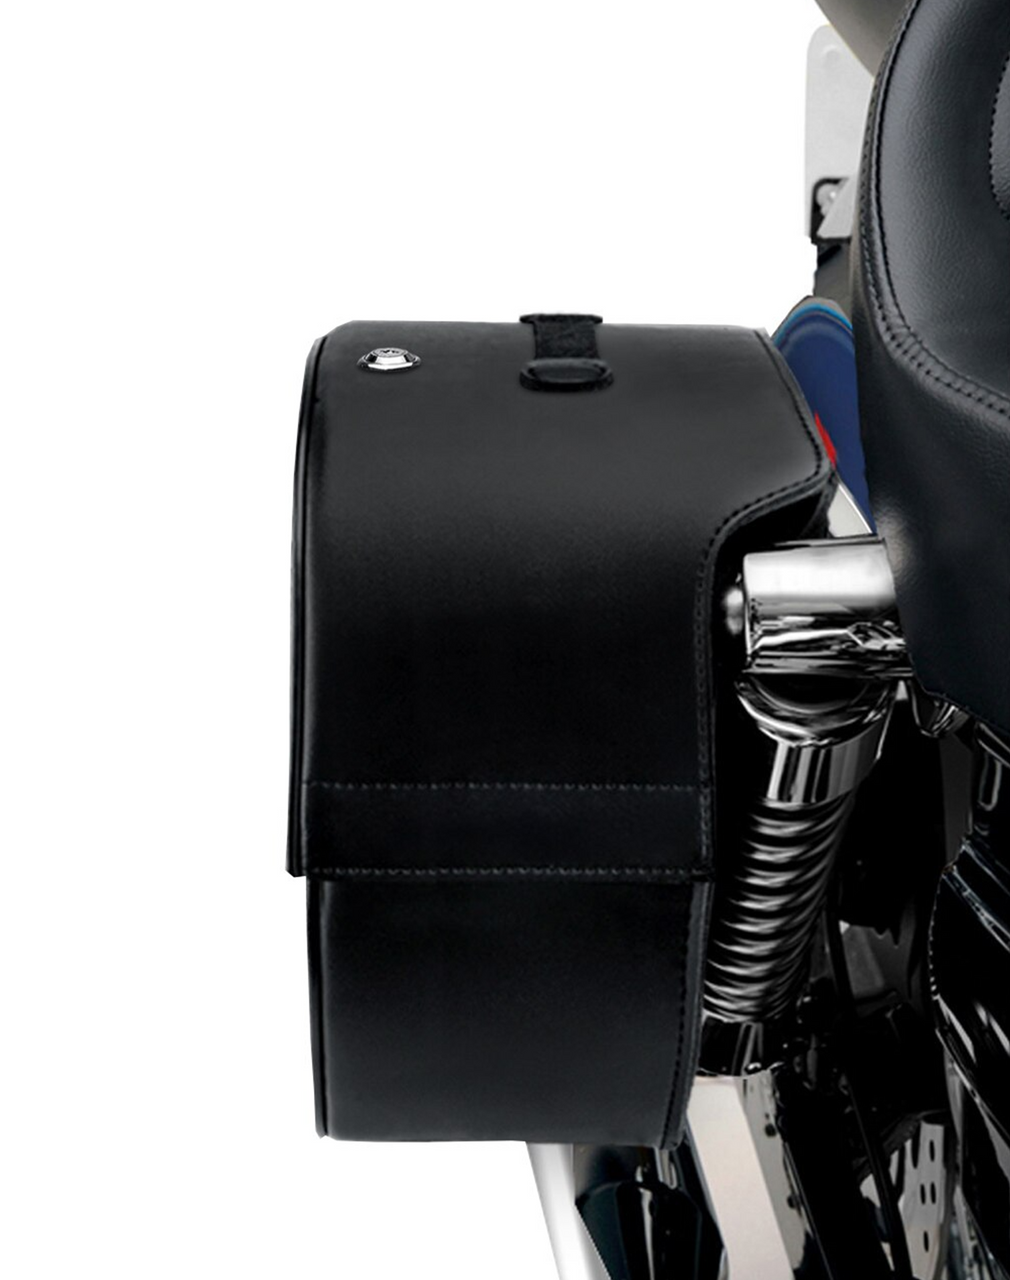 Viking Shock Cutout Armor Large Motorcycle Saddlebags For Harley Dyna Low Rider FXDL Shock Cutout View